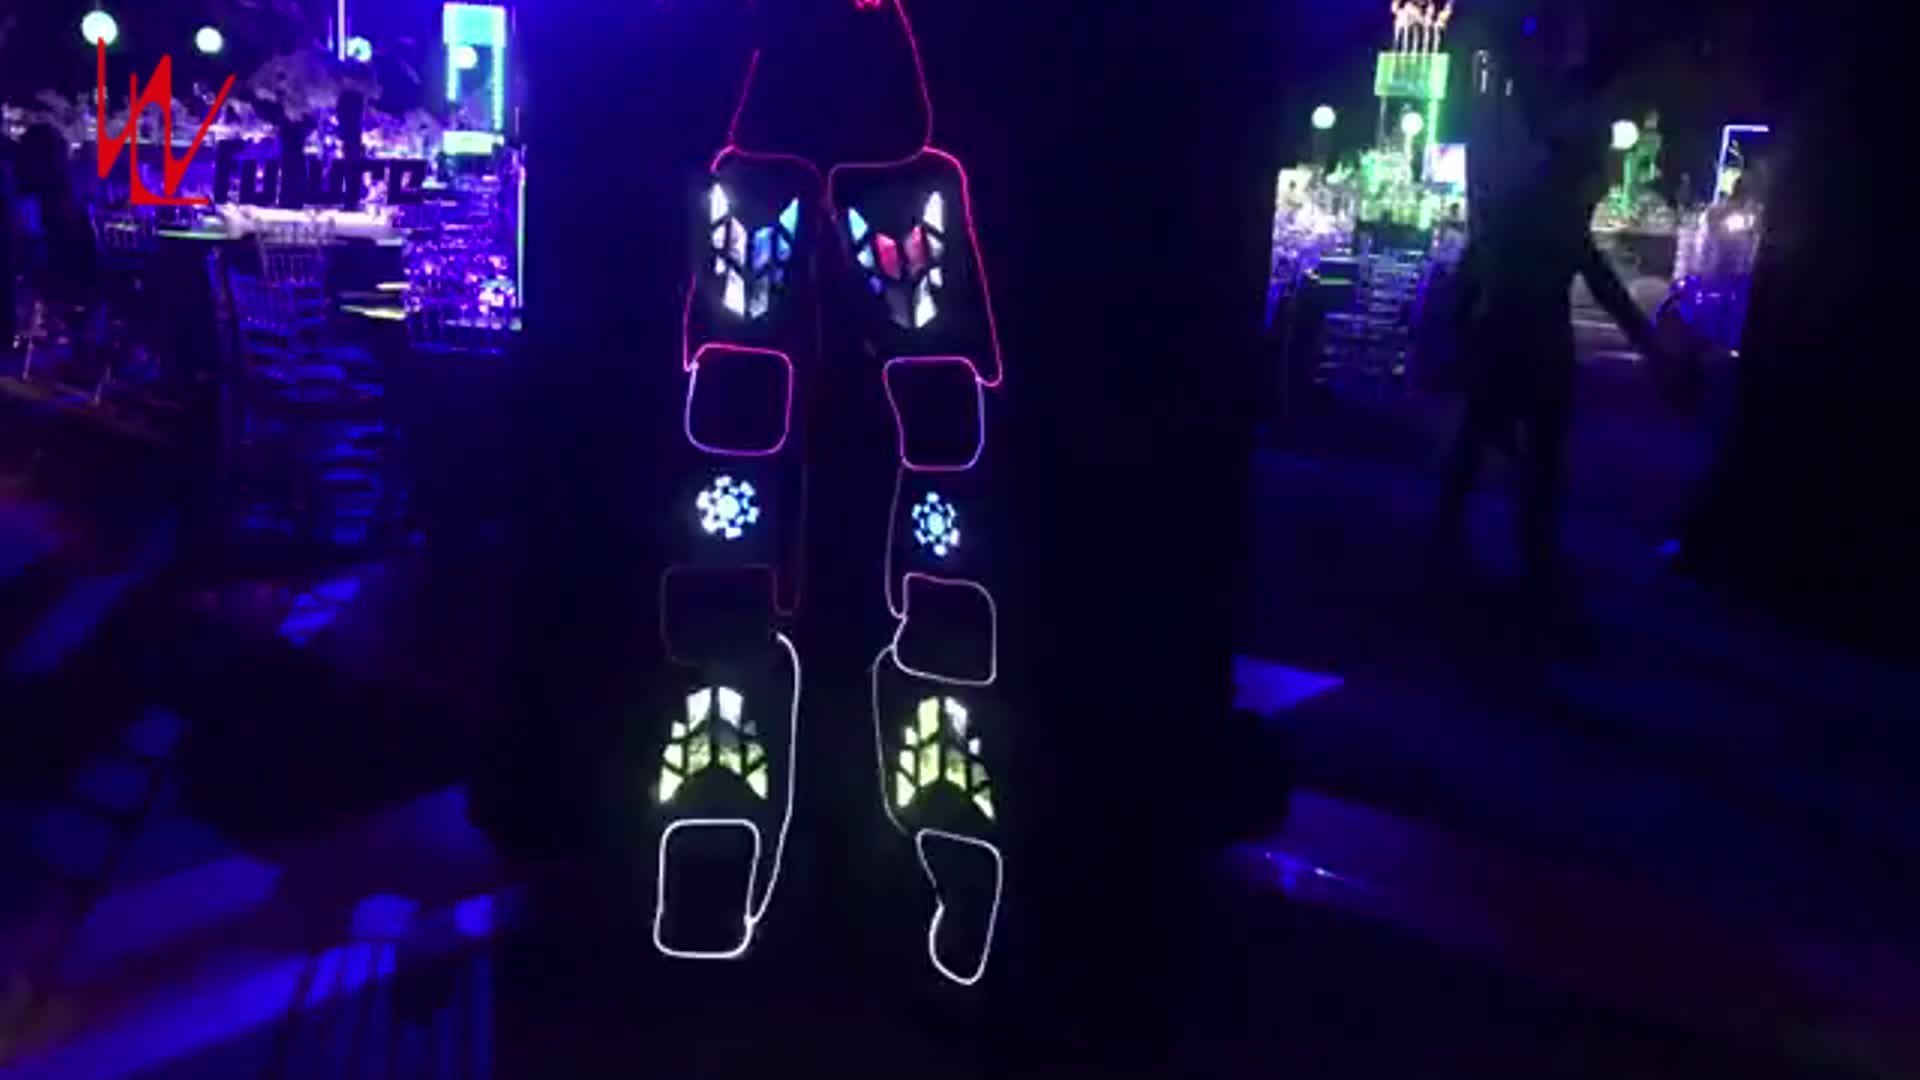 Wireless control stilts LED robot costume for dance stage performance wear,LED costumes ideas